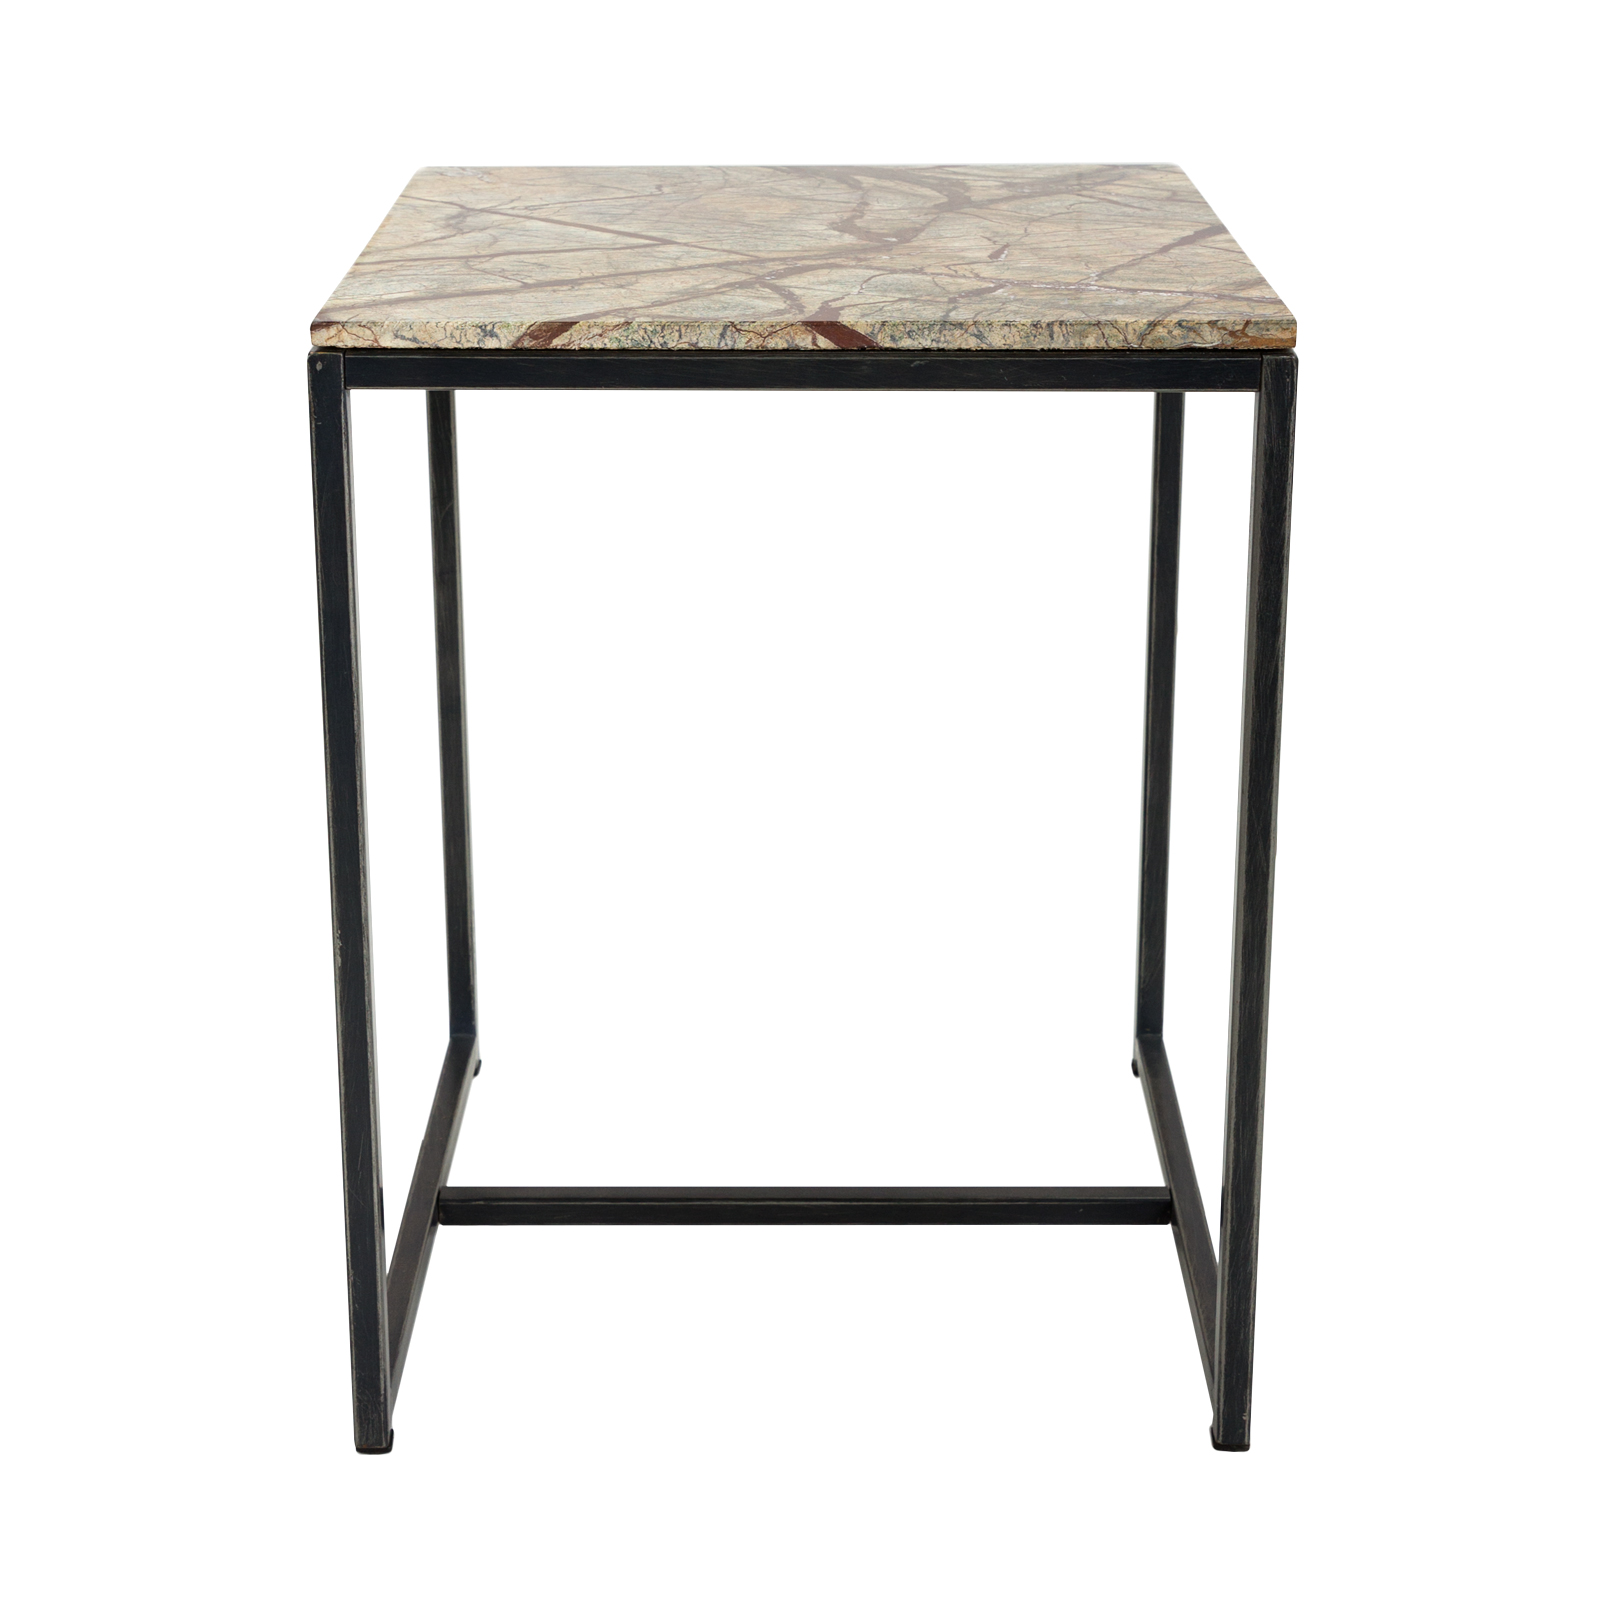 Marble side table rentals event table rentals formdecor for Table rentals